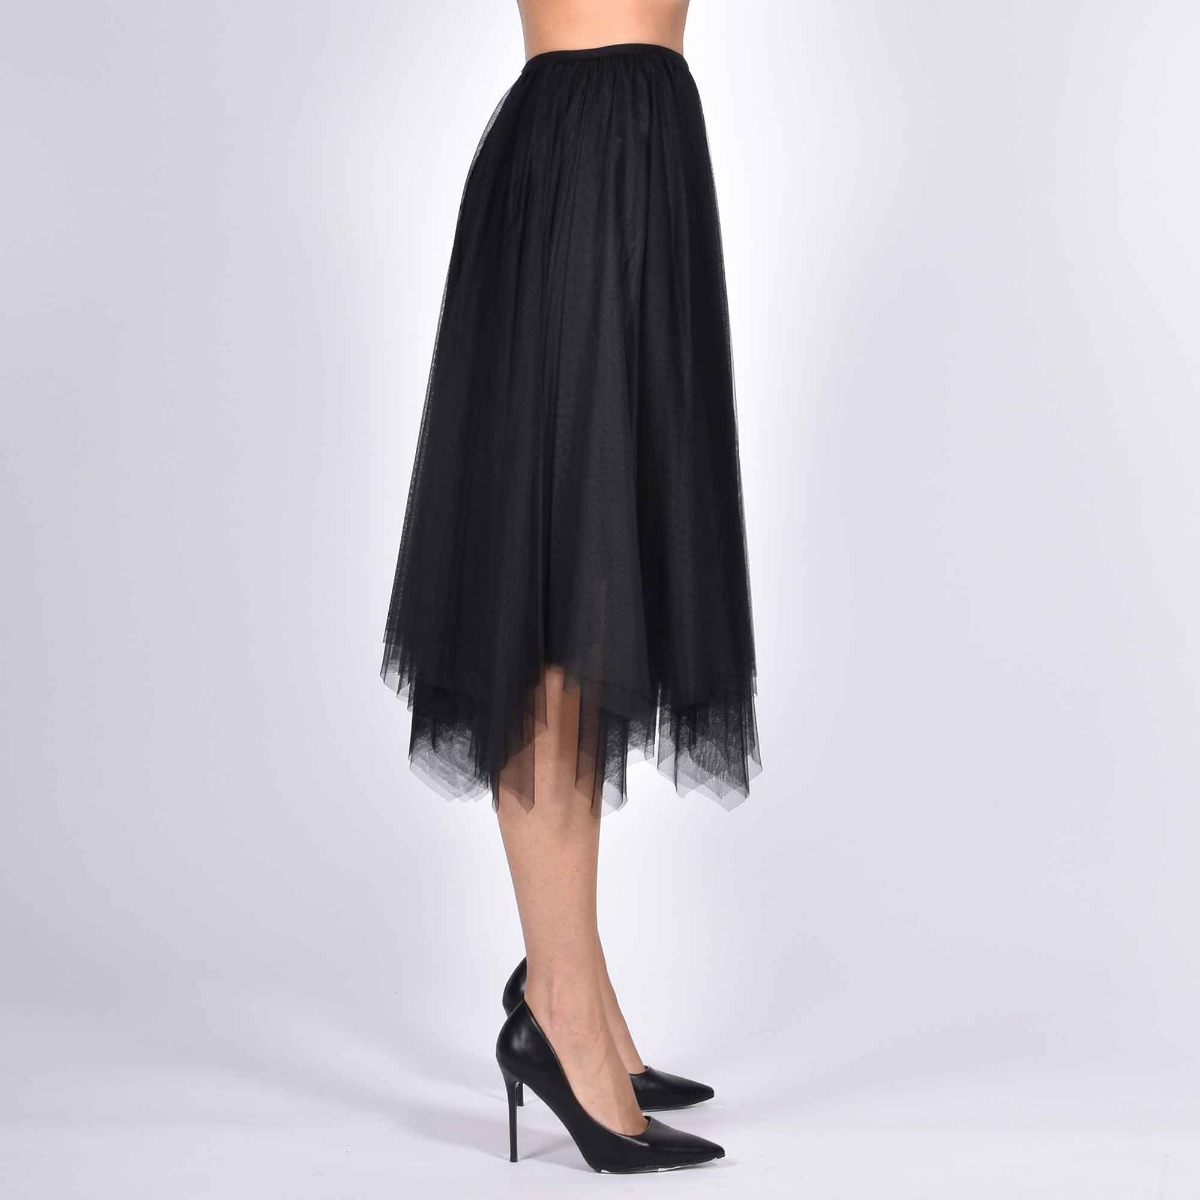 Gonna tulle a punte - Nero